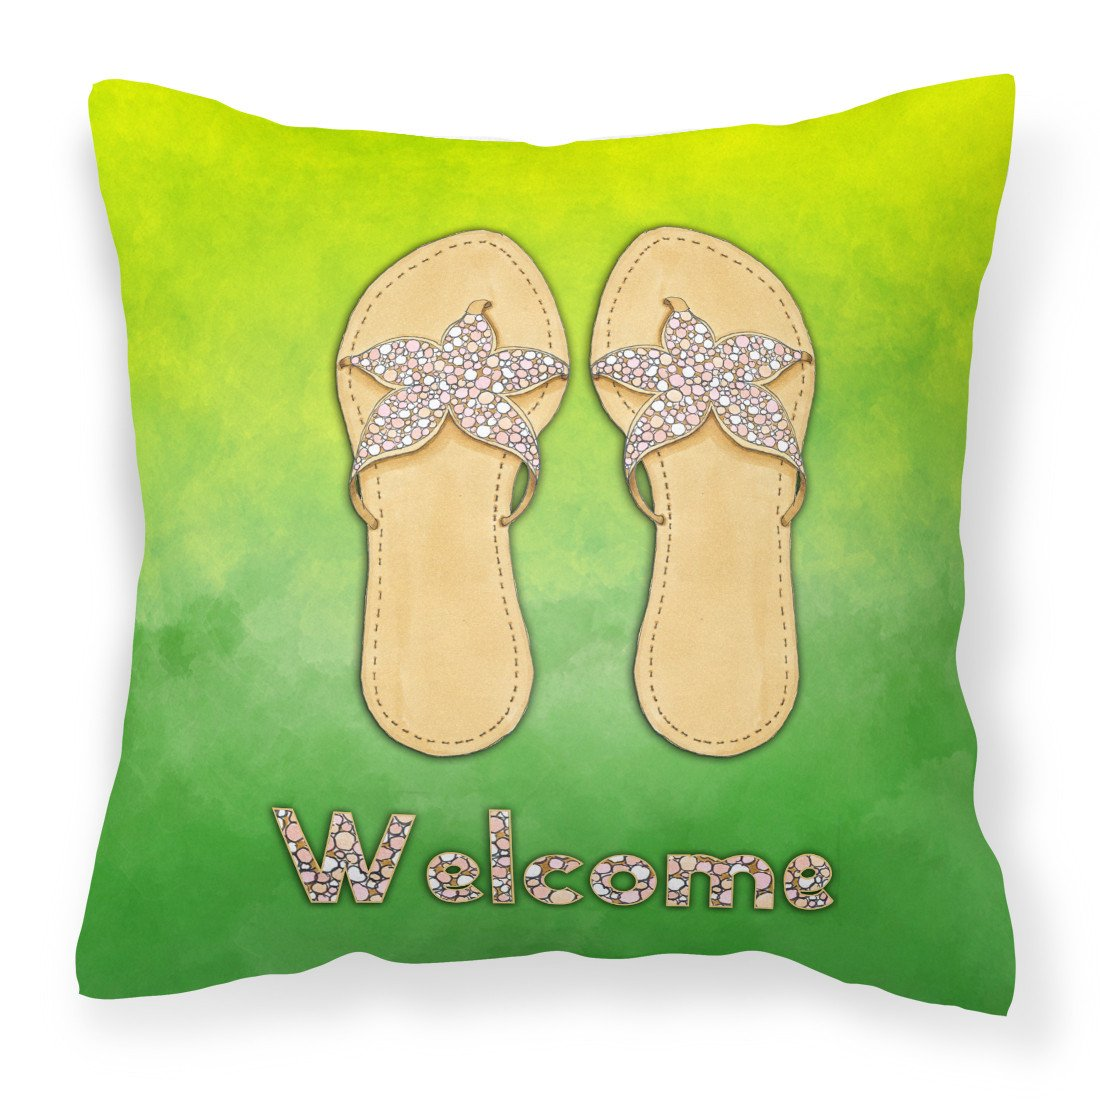 Flip Flops Welcome Fabric Decorative Pillow BB7454PW1818 by Caroline's Treasures